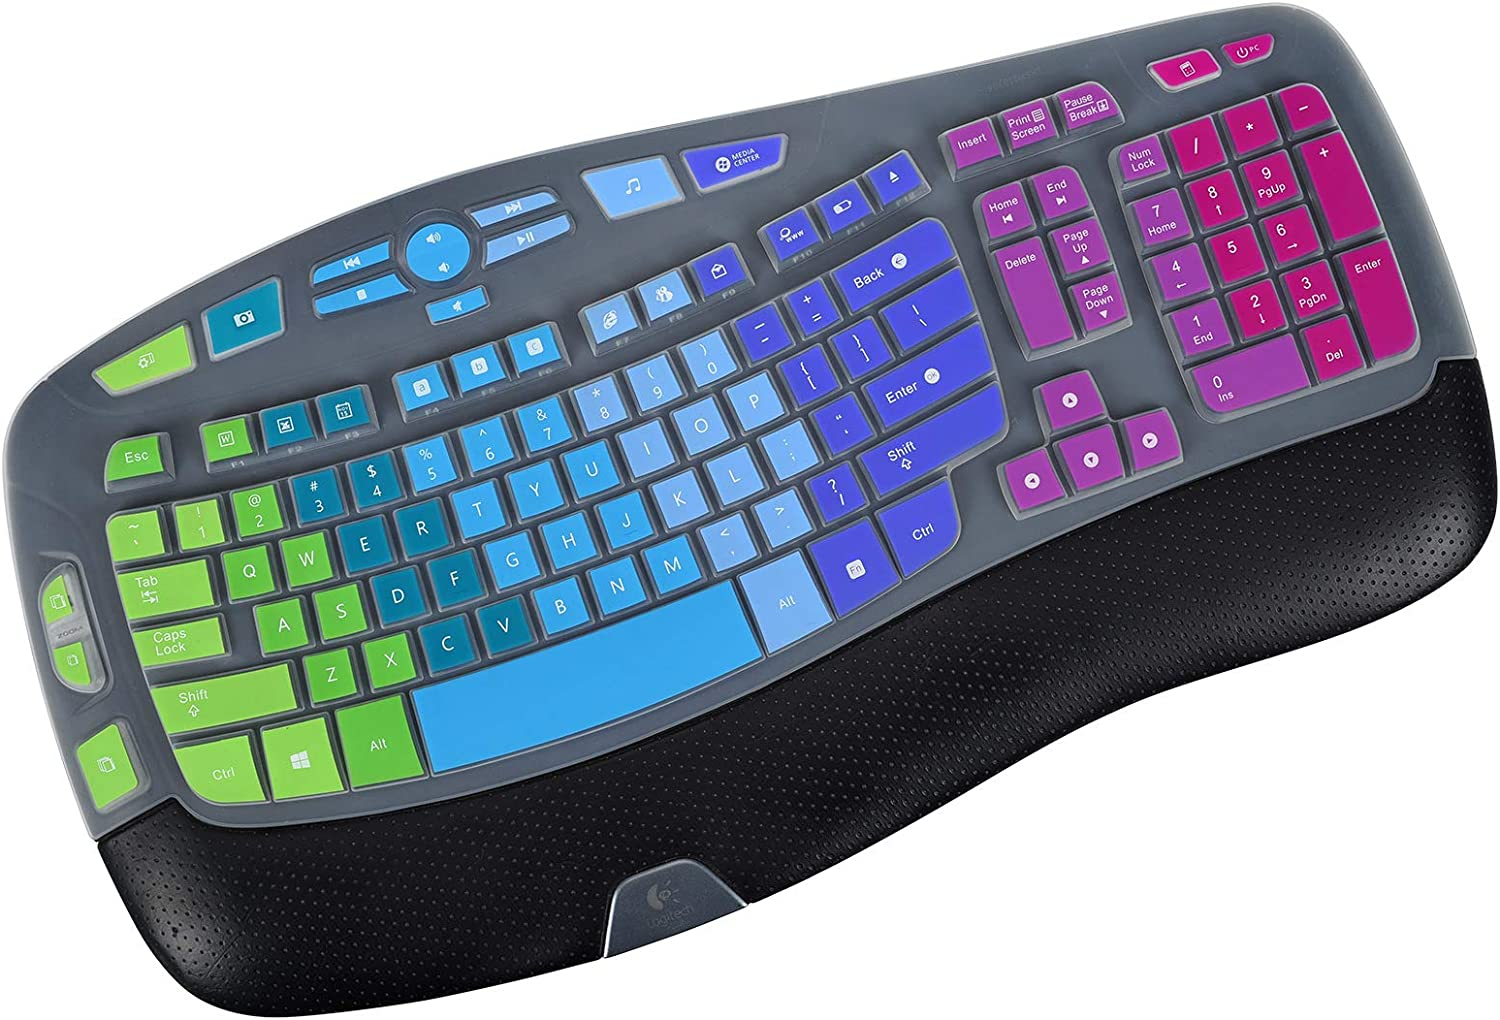 Ultra Thin Keyboard Cover for Logitech K350 & Logitech MK570 MK550 Wireless Keyboard, Logitech K350 MK570 MK550 Wireless Wave Keyboard Cover - Rainbow